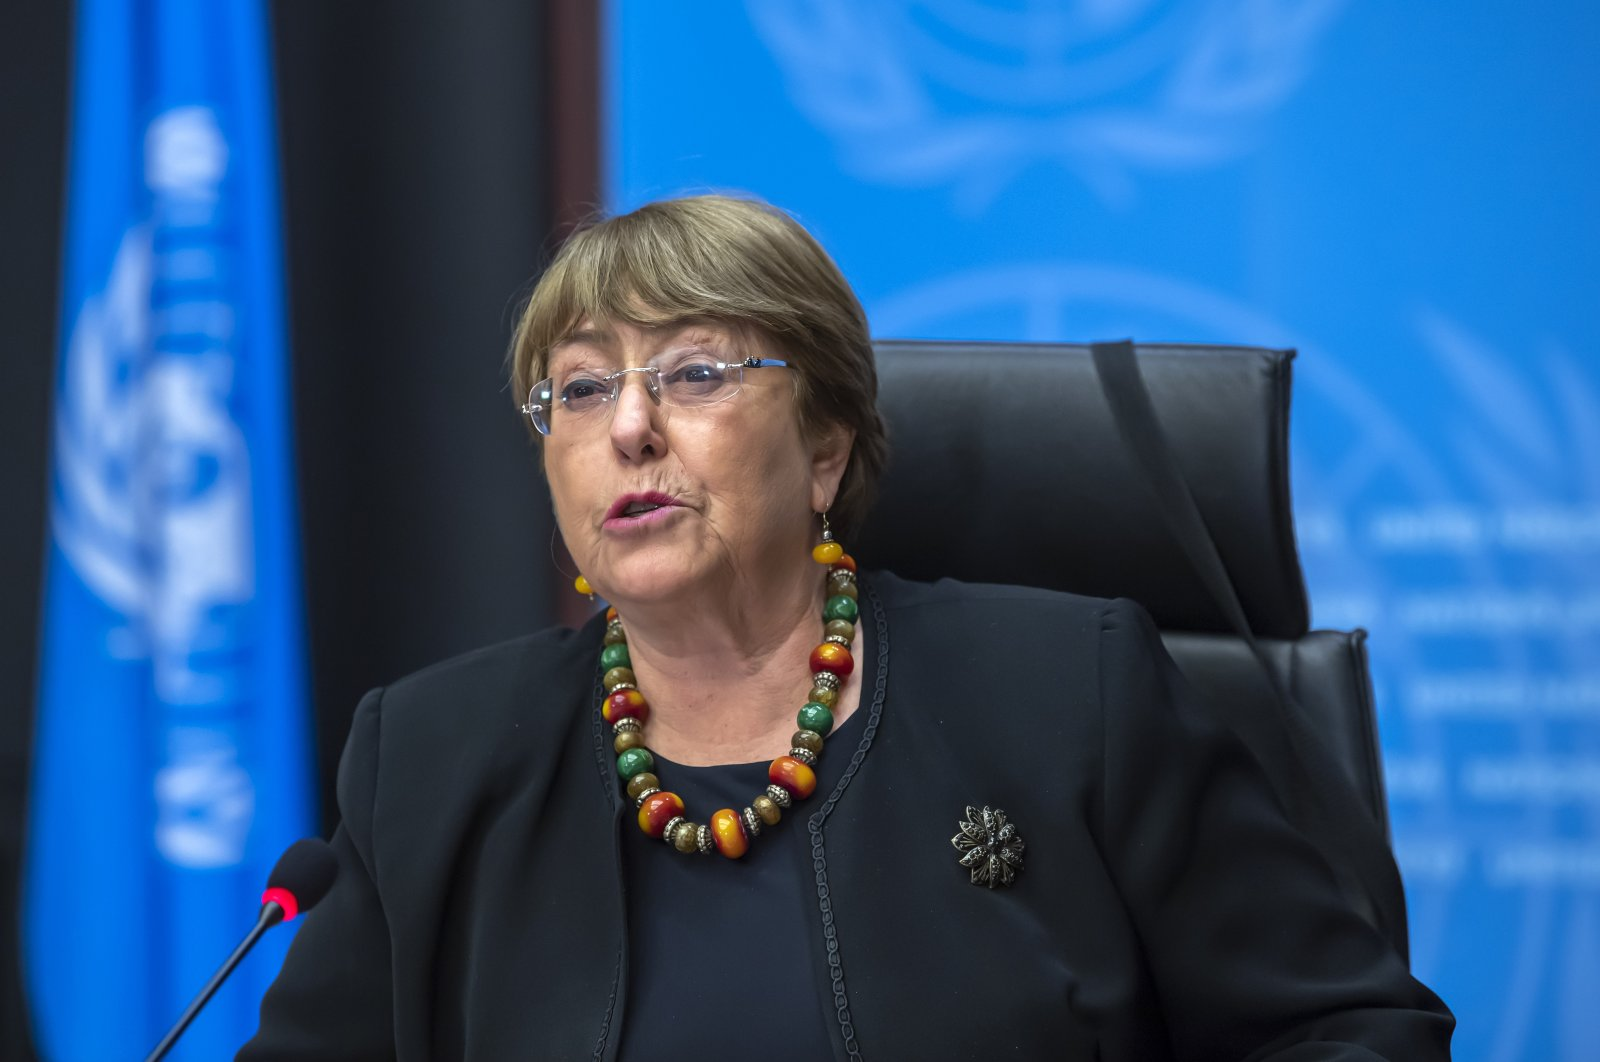 UN High Commissioner for Human Rights Michelle Bachelet speaks during a press conference at the European headquarters of the United Nations in Geneva, Switzerland, Dec. 9, 2020. (AP Photo)